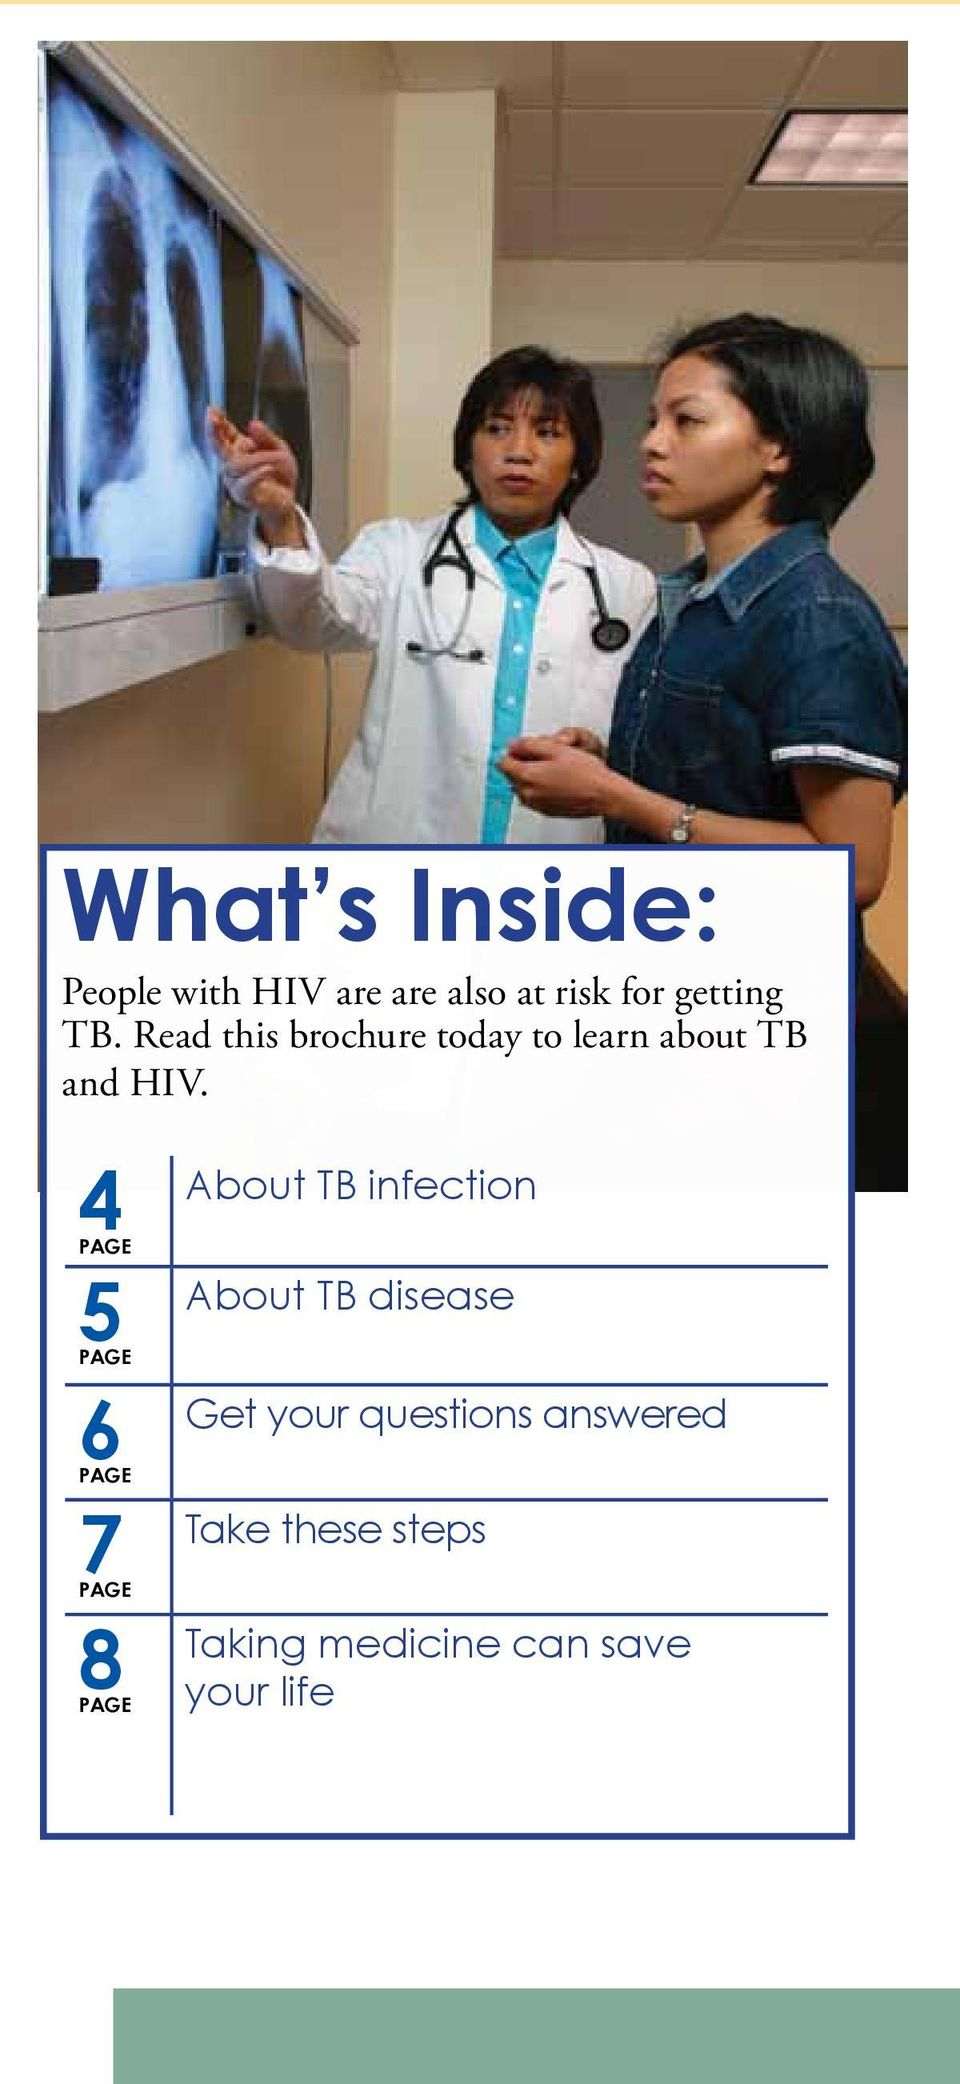 4PAGE 5PAGE About TB infection About TB disease 6PAGE Get your